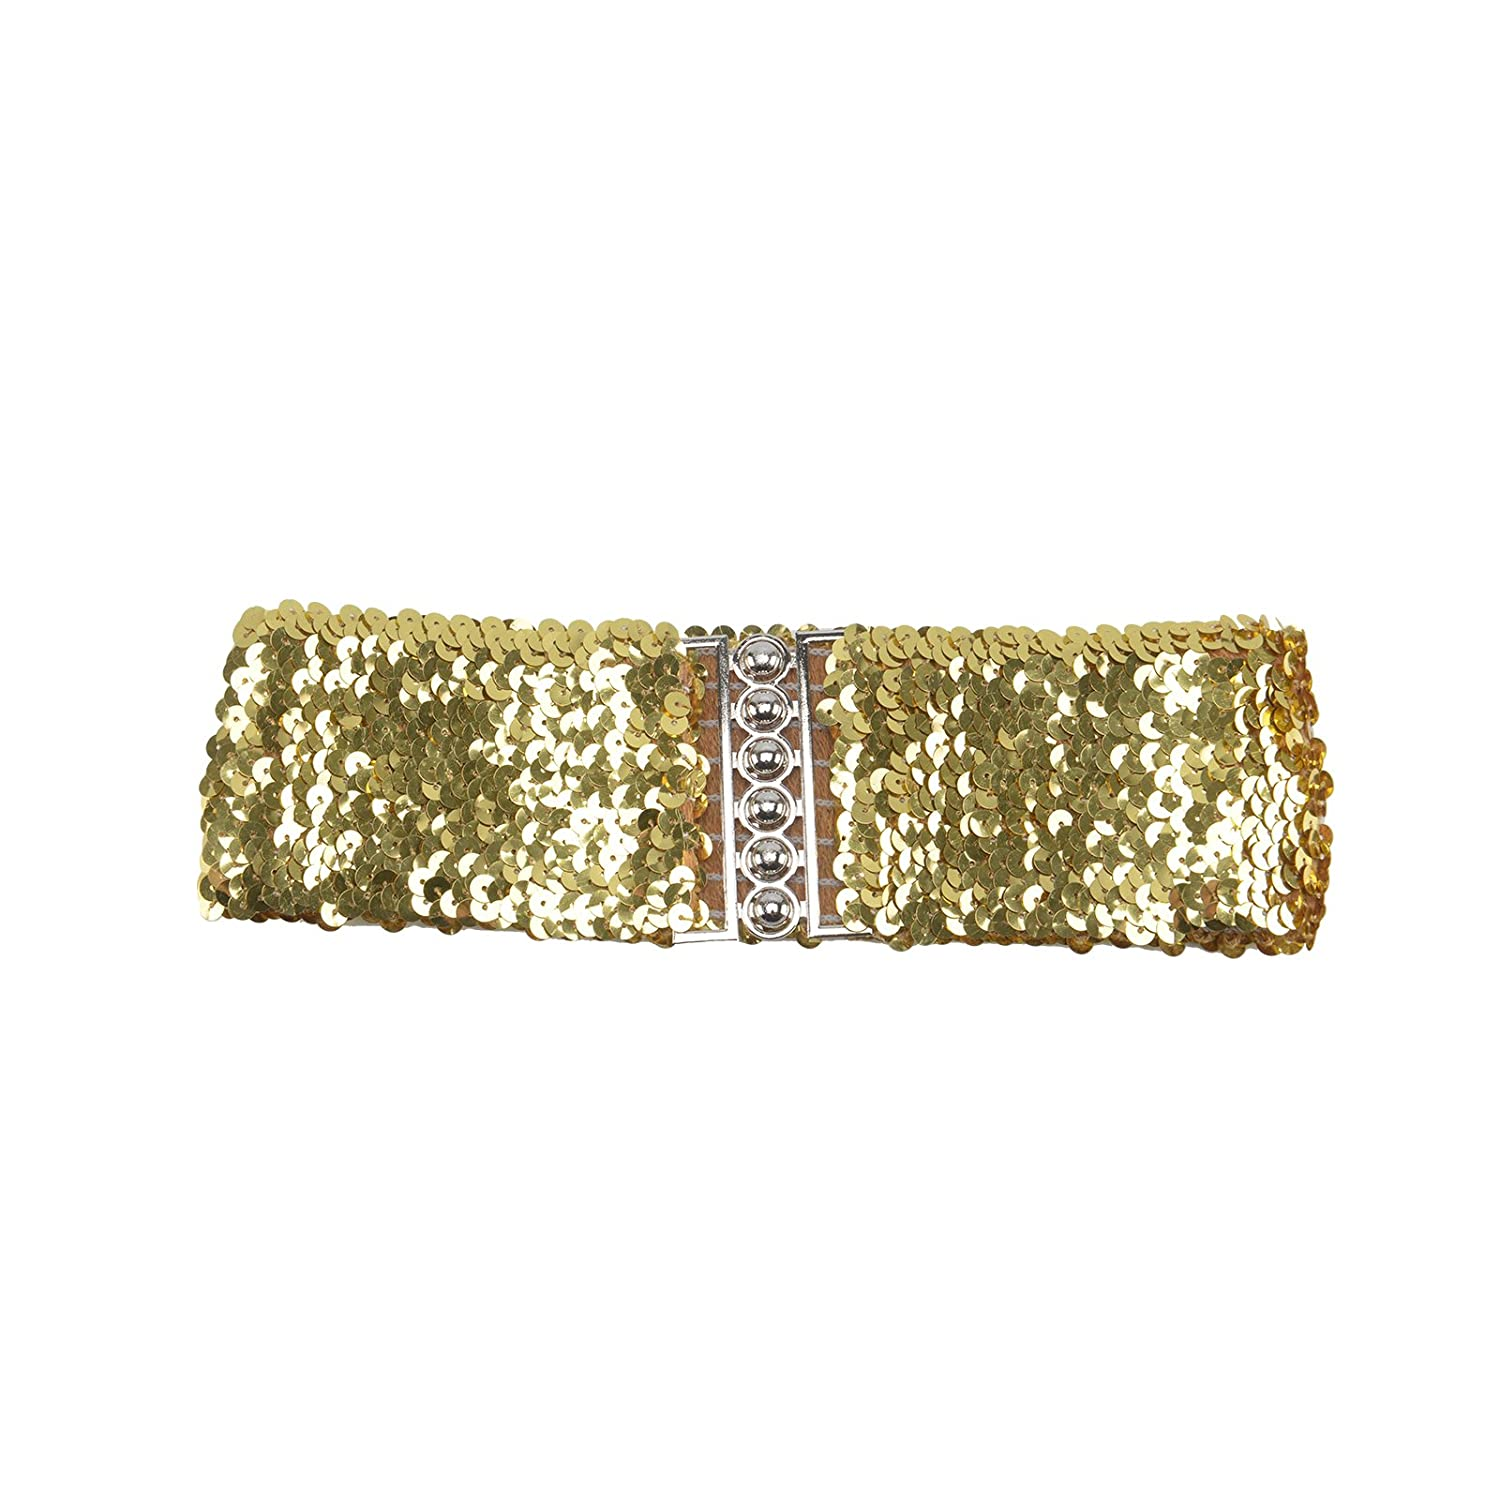 DHOUTDOORS Sequins Belt Bling Shining Wide Waistband Elastic Stretchy For Dress Women Lady Girls